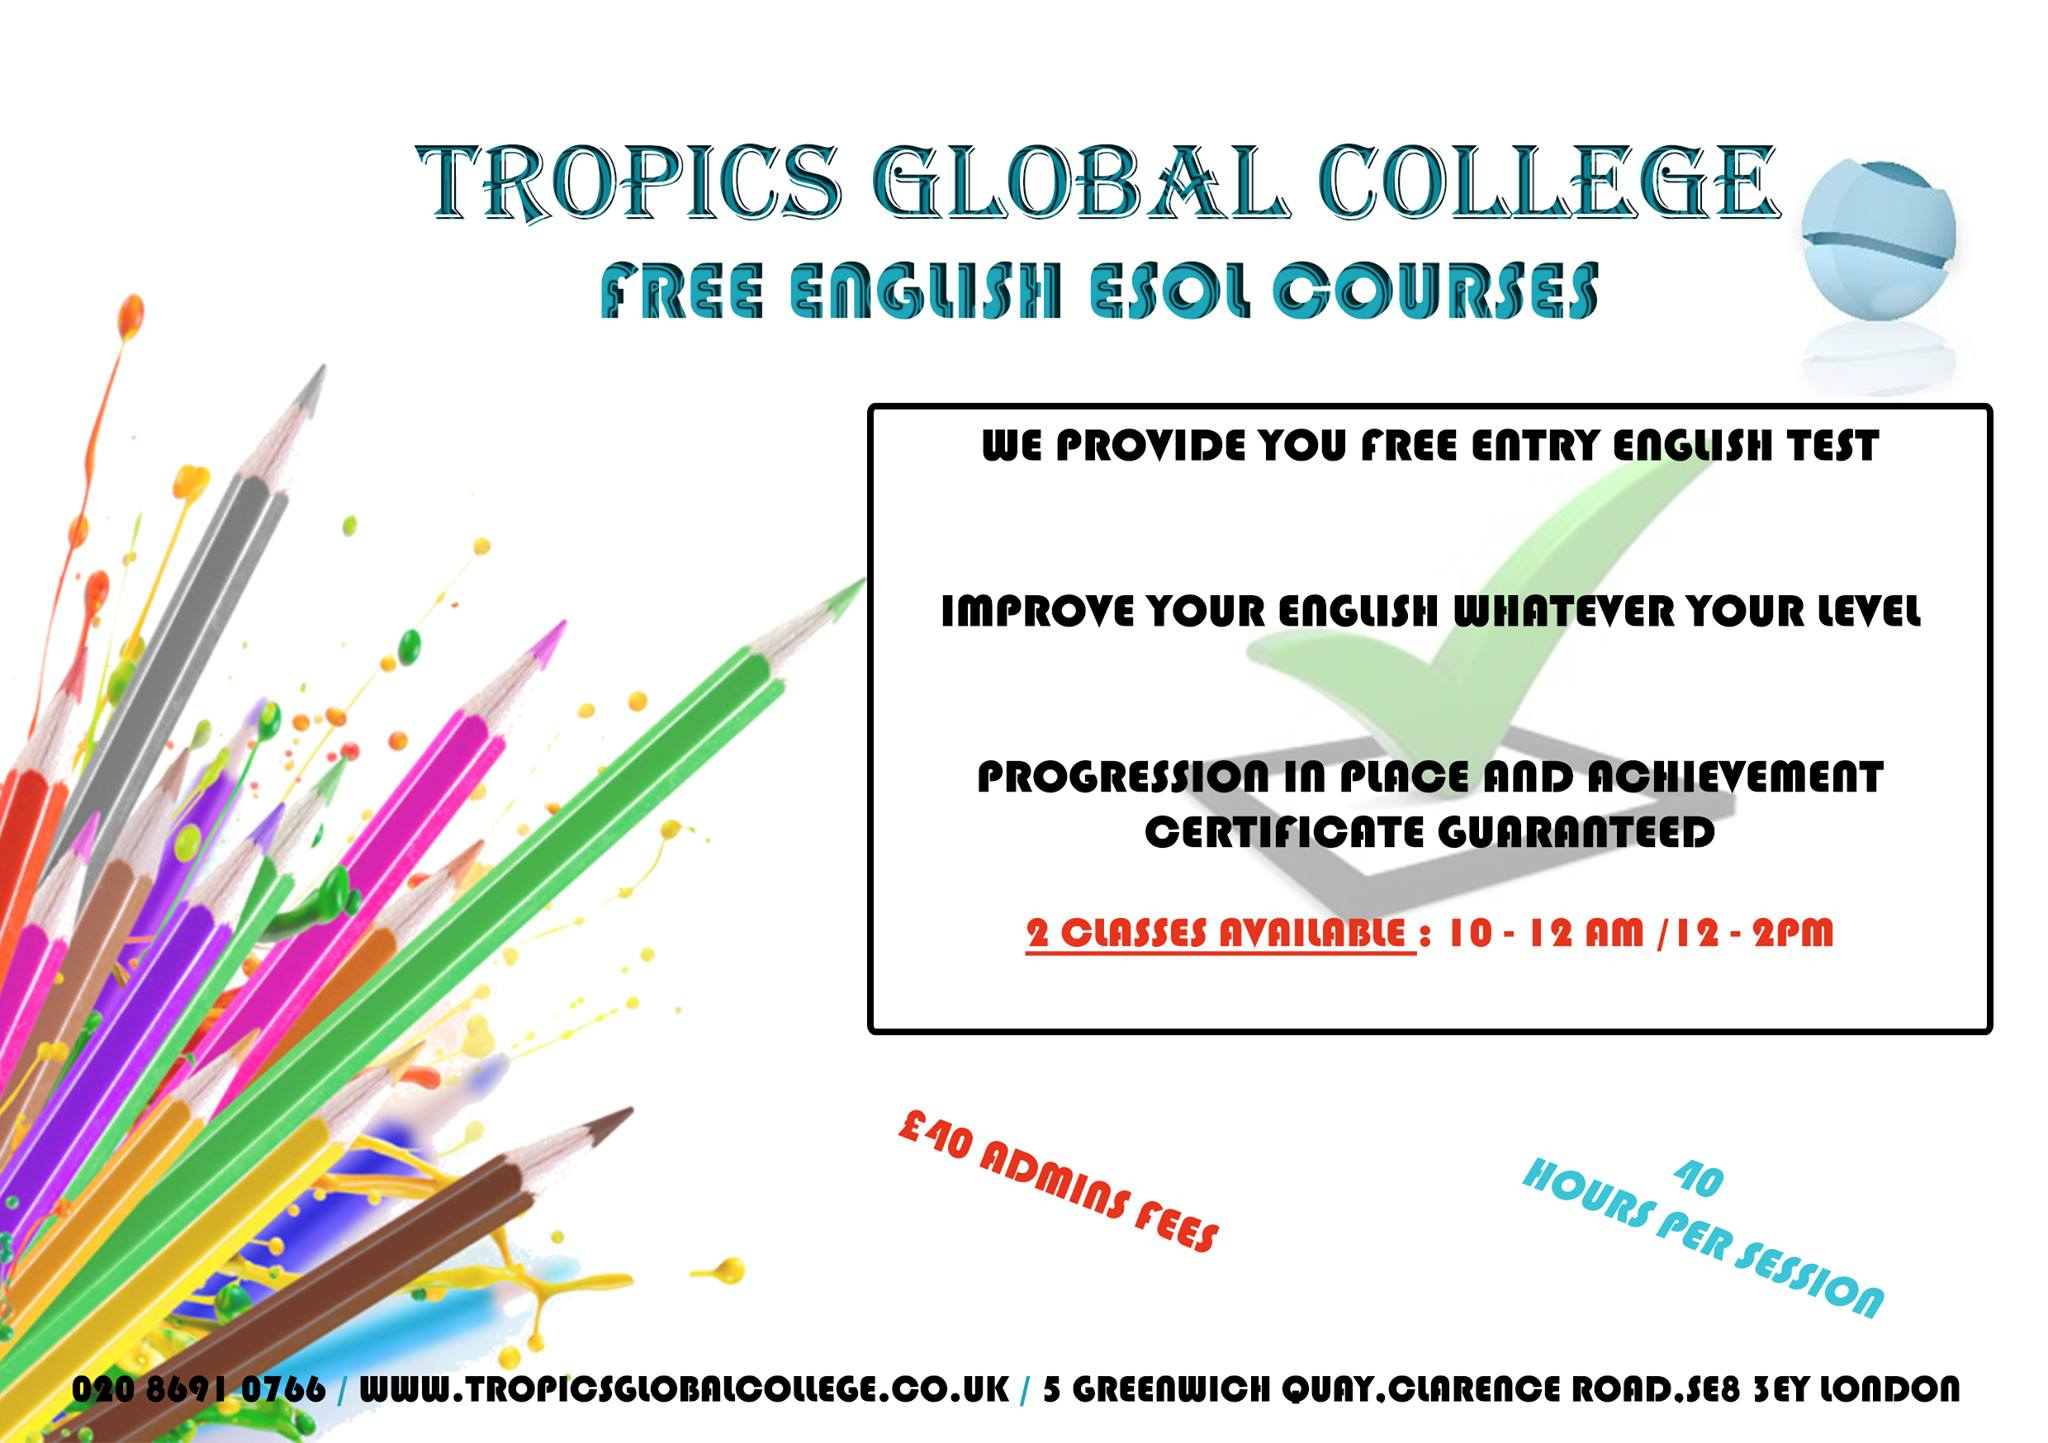 Free English courses for the session of April 2018